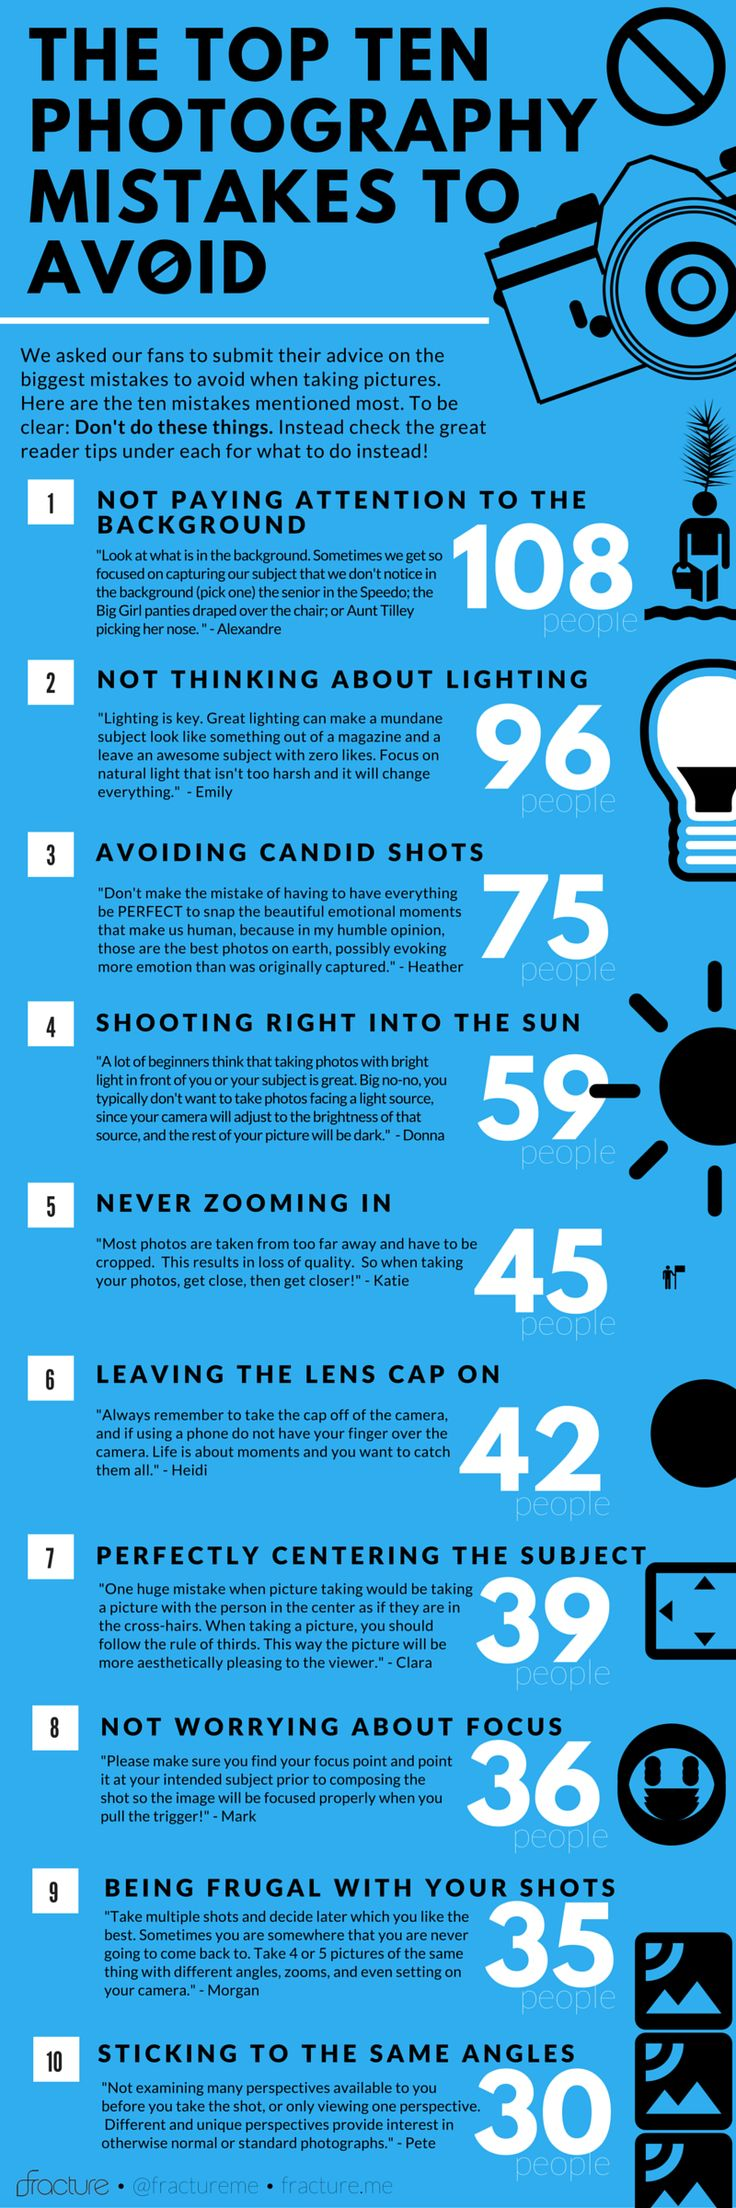 Fracture's Awesome Infographic of Photography Mistakes to Avoid!